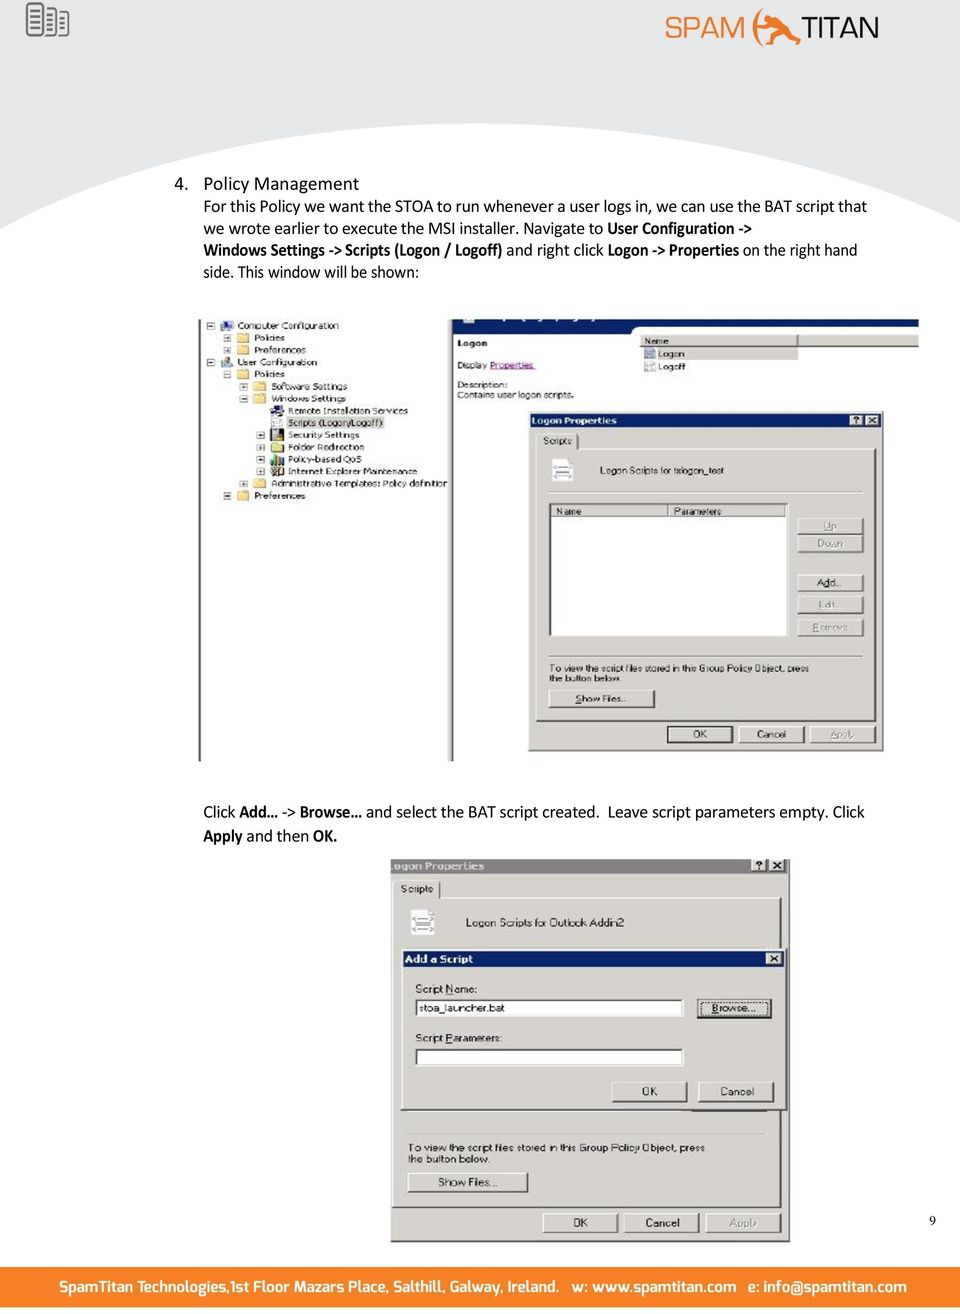 Navigate to User Configuration -> Windows Settings -> Scripts (Logon / Logoff) and right click Logon ->